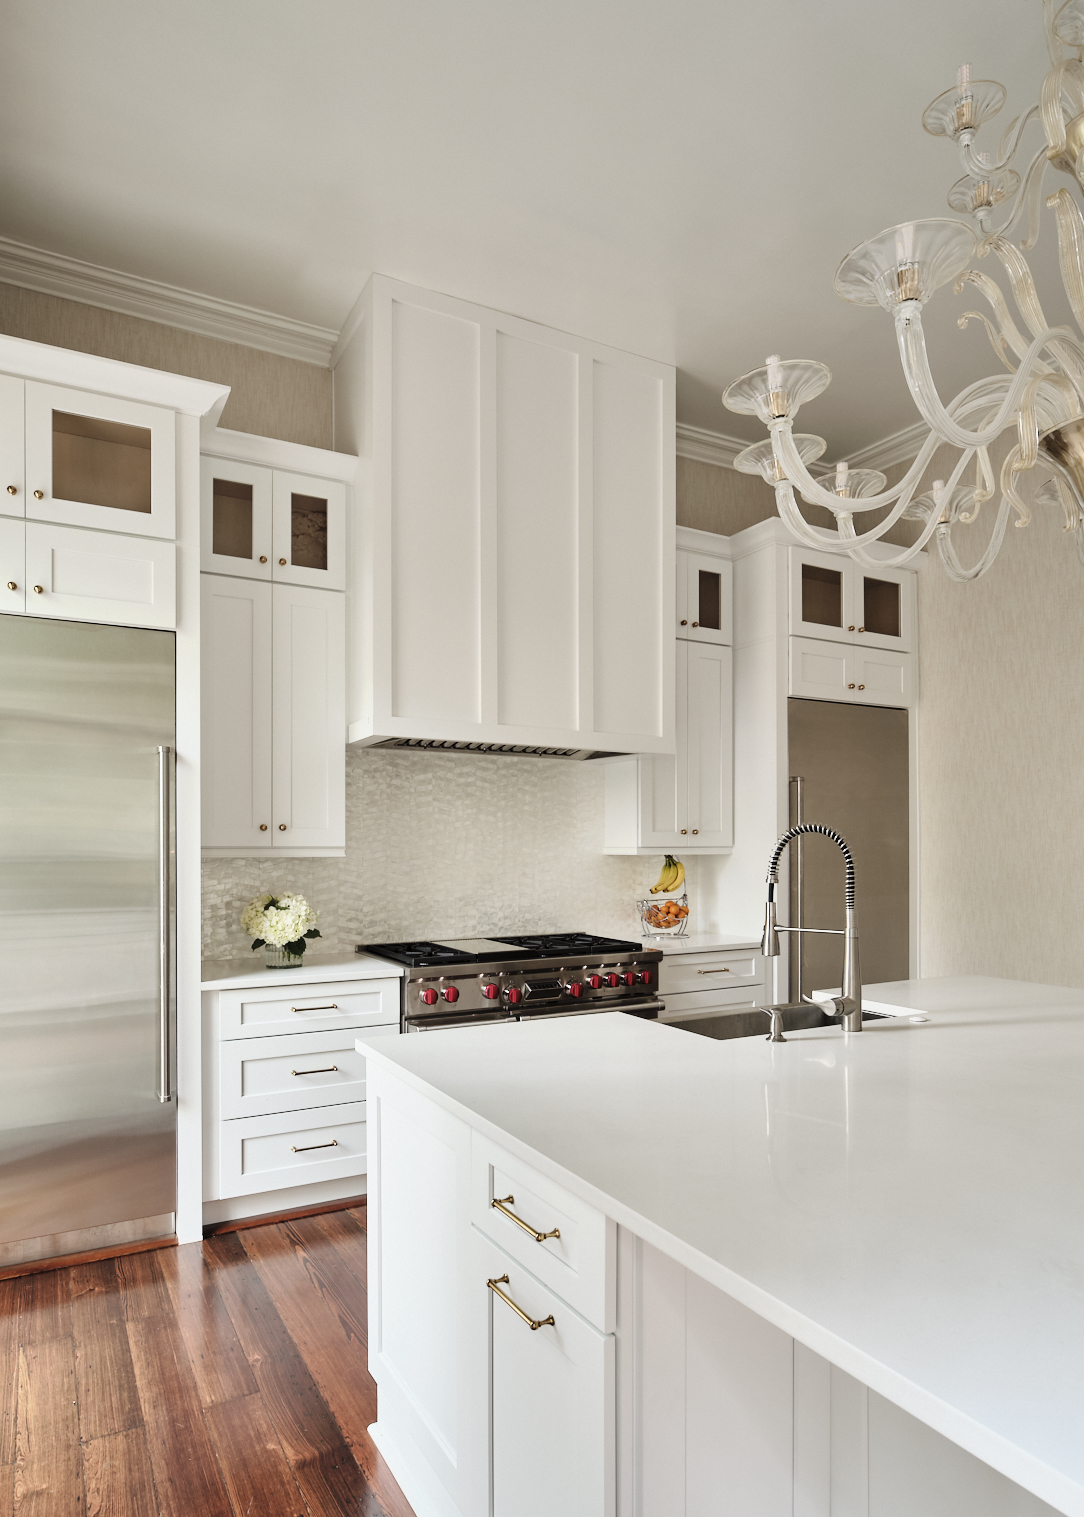 St_Charles_Finals_Web_Res-17 Tips To Consider When Remodeling a Kitchen from New Orleans Designer, April Vogt